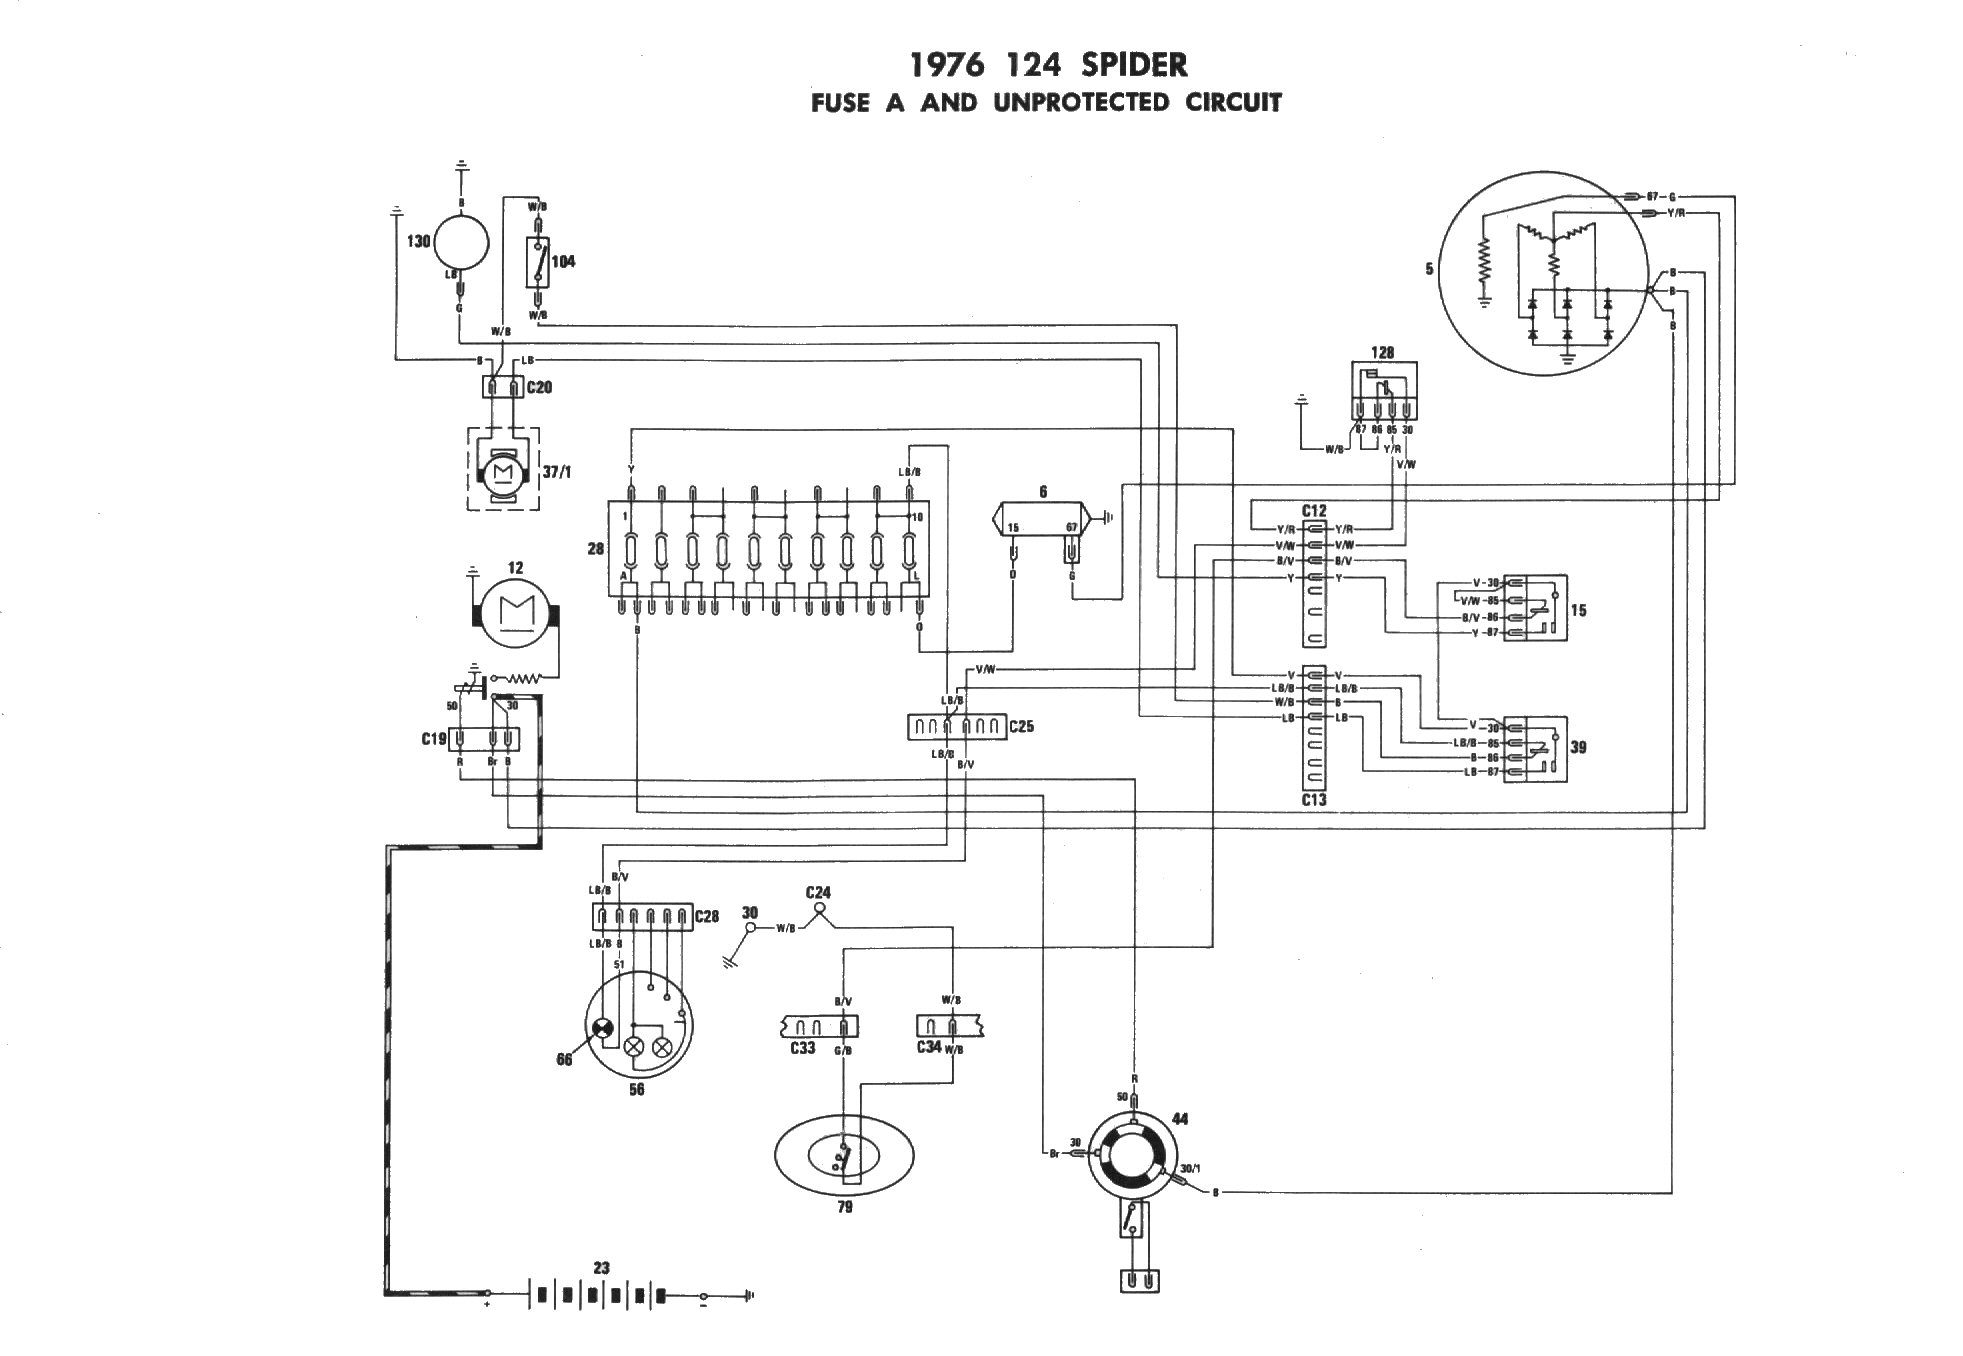 Fiat Wiring Diagram : Fiat spider fuse box diagram wiring